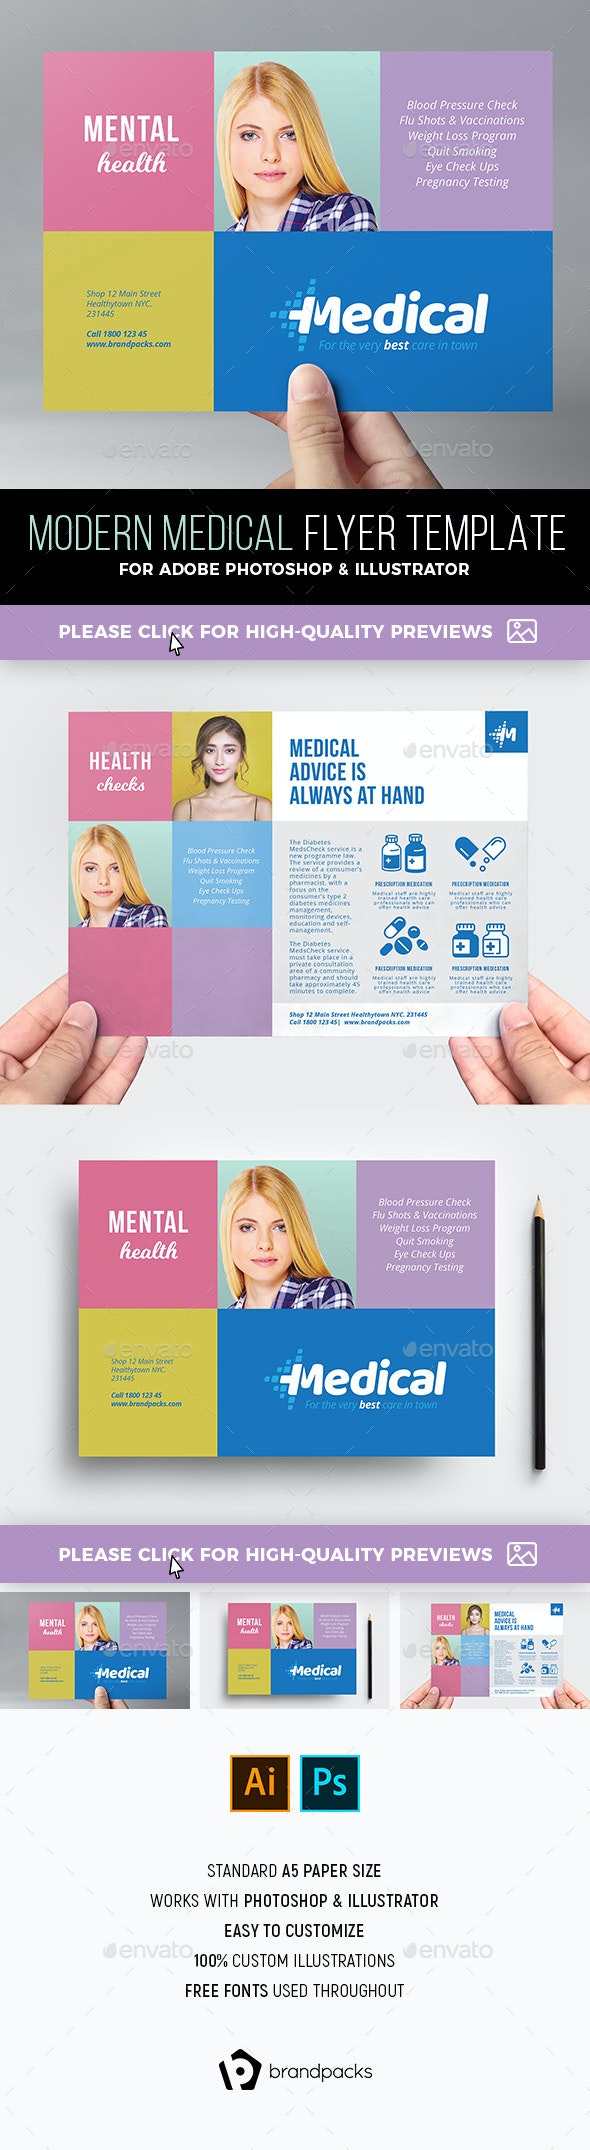 Modern Medical Flyer Template - Corporate Flyers